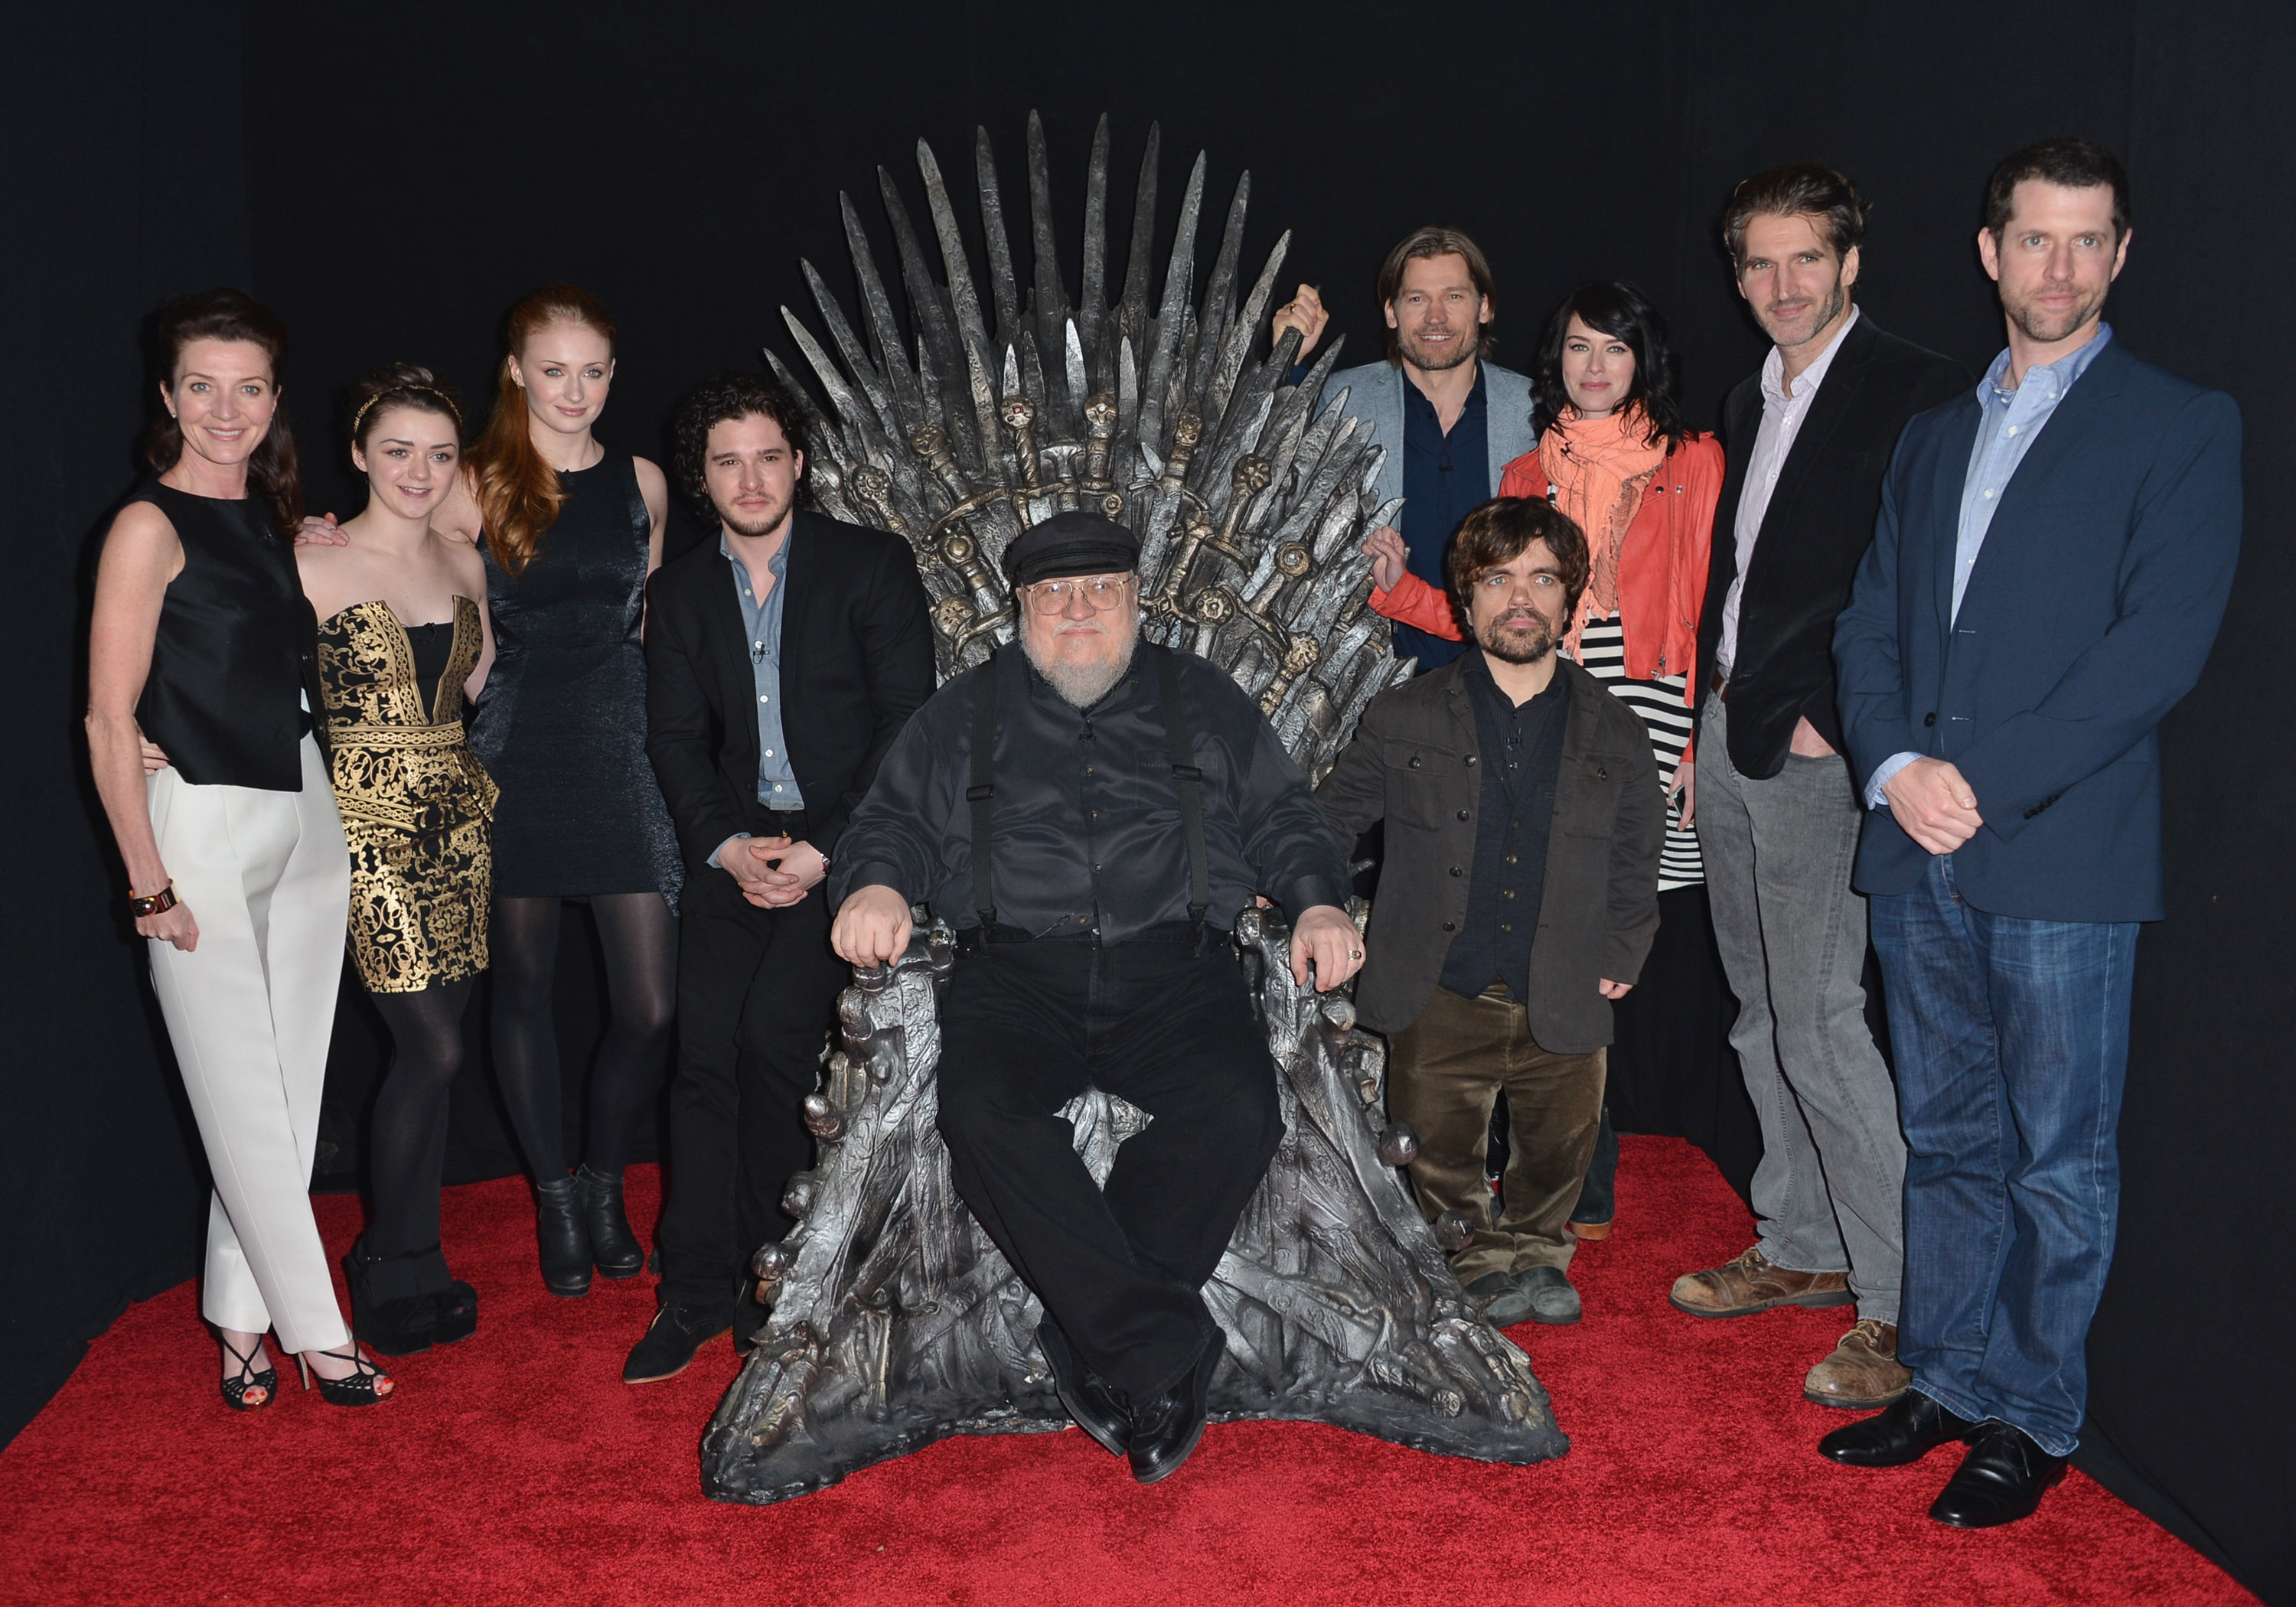 Fascinating 'Game of Thrones' Interactive Map Will Help You ... on the girl with the dragon tattoo character map, george r. r. martin, a song of ice and fire, south park character map, fire and blood, a feast for crows, breaking bad character map, the winds of winter, king of thrones map, king of thorns map, assassin's creed character map, winter is coming, once upon a time character map, tales of dunk and egg, a clash of kings, character counts map, lord snow, walking dead map, a golden crown, mad men character map, a dance with dragons, game of thrones - season 2, a storm of swords, true detective character map, a feast for crows character map, lego batman 2 character map, dothraki language, fire and ice book map, the prince of winterfell, house targaryen, house of cards character map, criminal minds character map, alfie owen-allen, gameof thrones map, game of thrones - season 1,